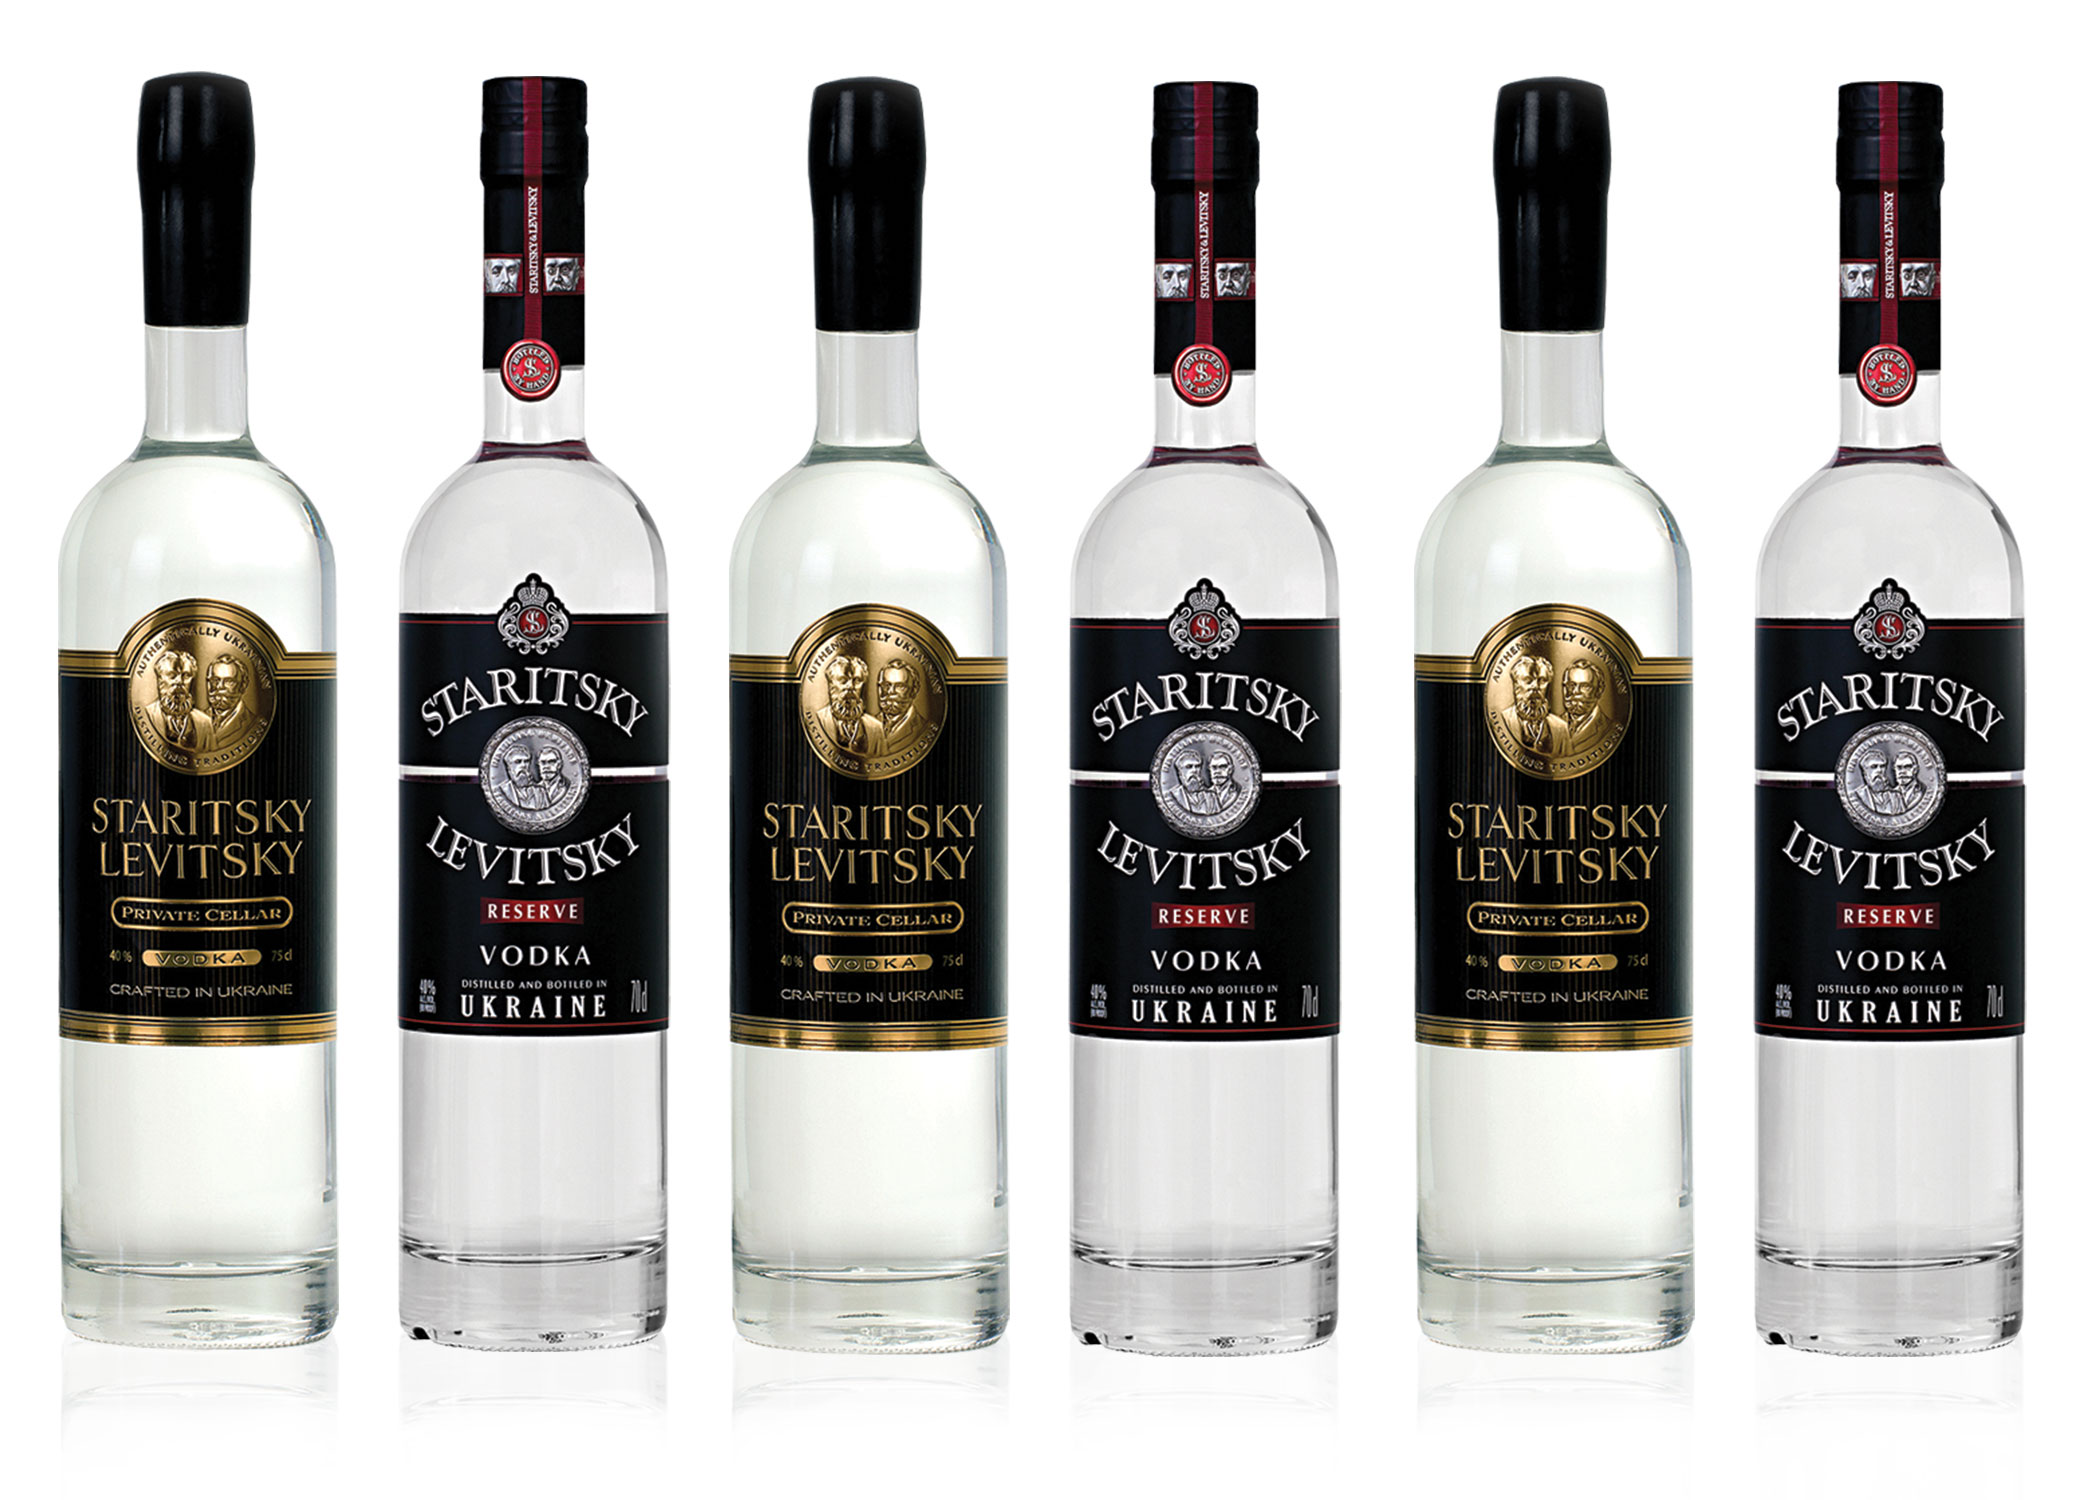 STARITSKY & LEVITSKY - Staritsky & Levitsky are a group of vodka enthusiasts, passionate about reviving the heritage and traditions of authentic, small batch vodka distillation in the historic birthplace of vodka production. After years of field trips, tastings and recipe research in the geographic